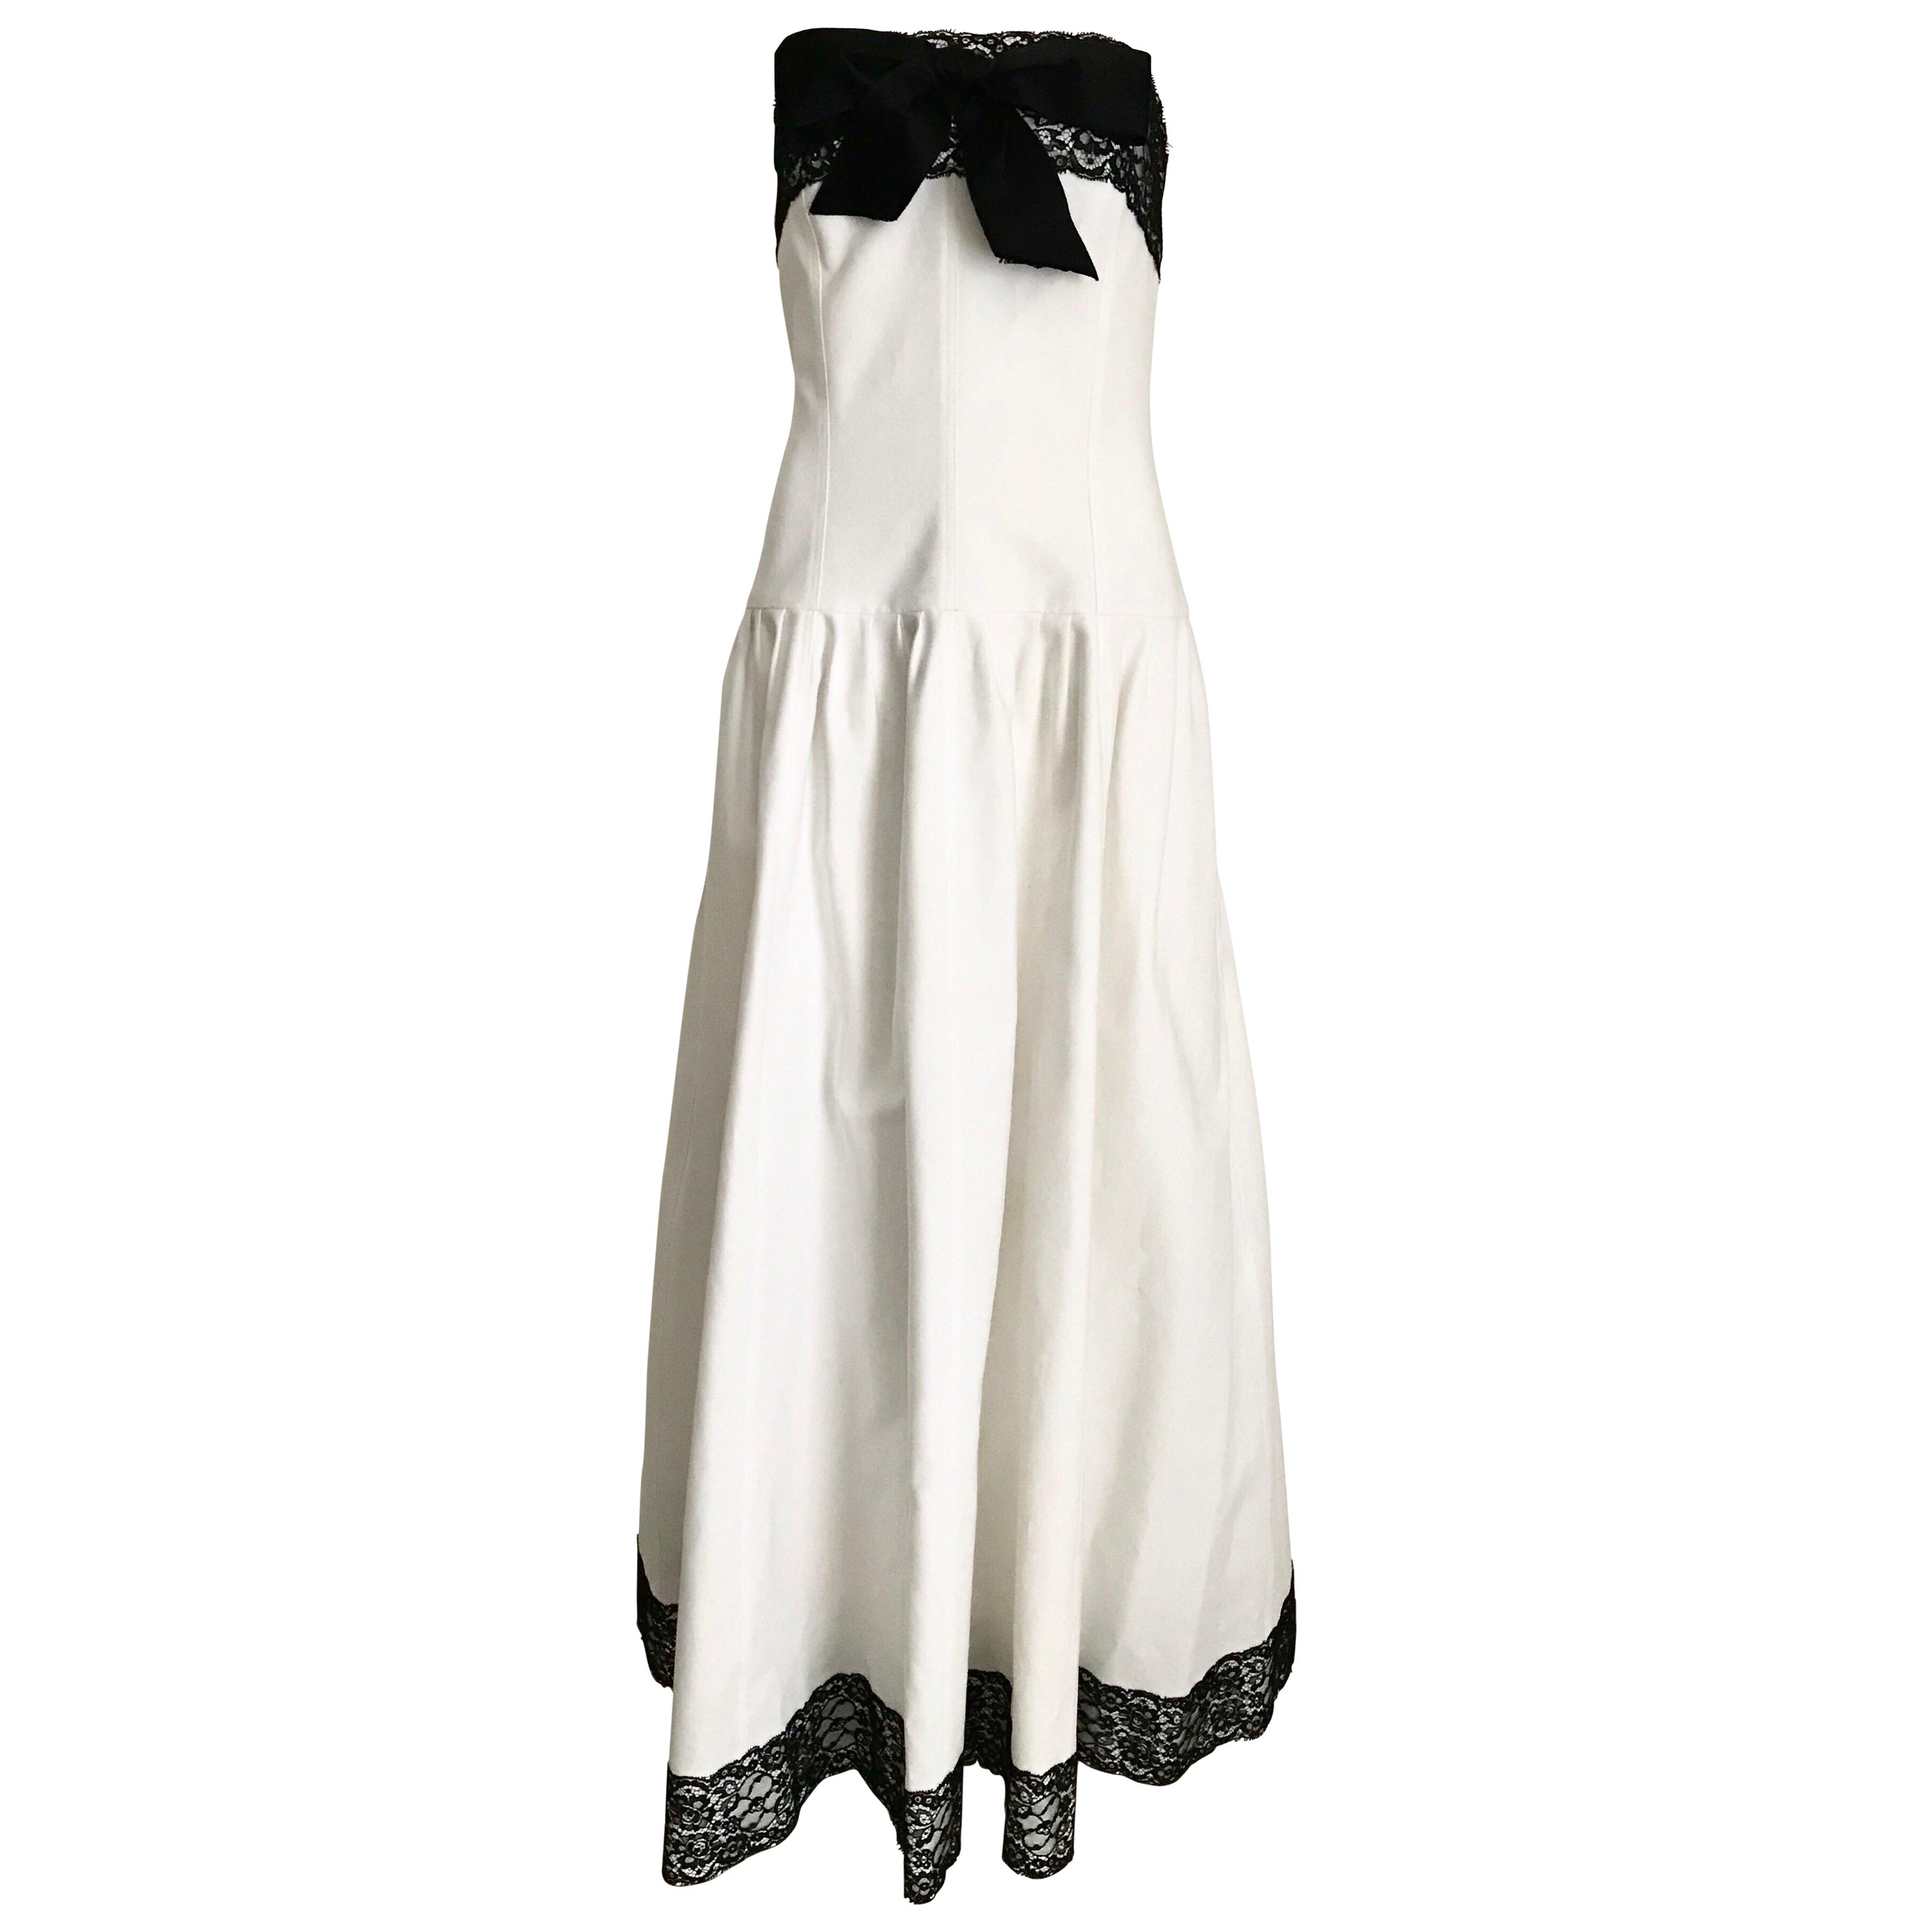 Chanel White and Black Cotton Pique Strapless Cocktail Dress, 1980s